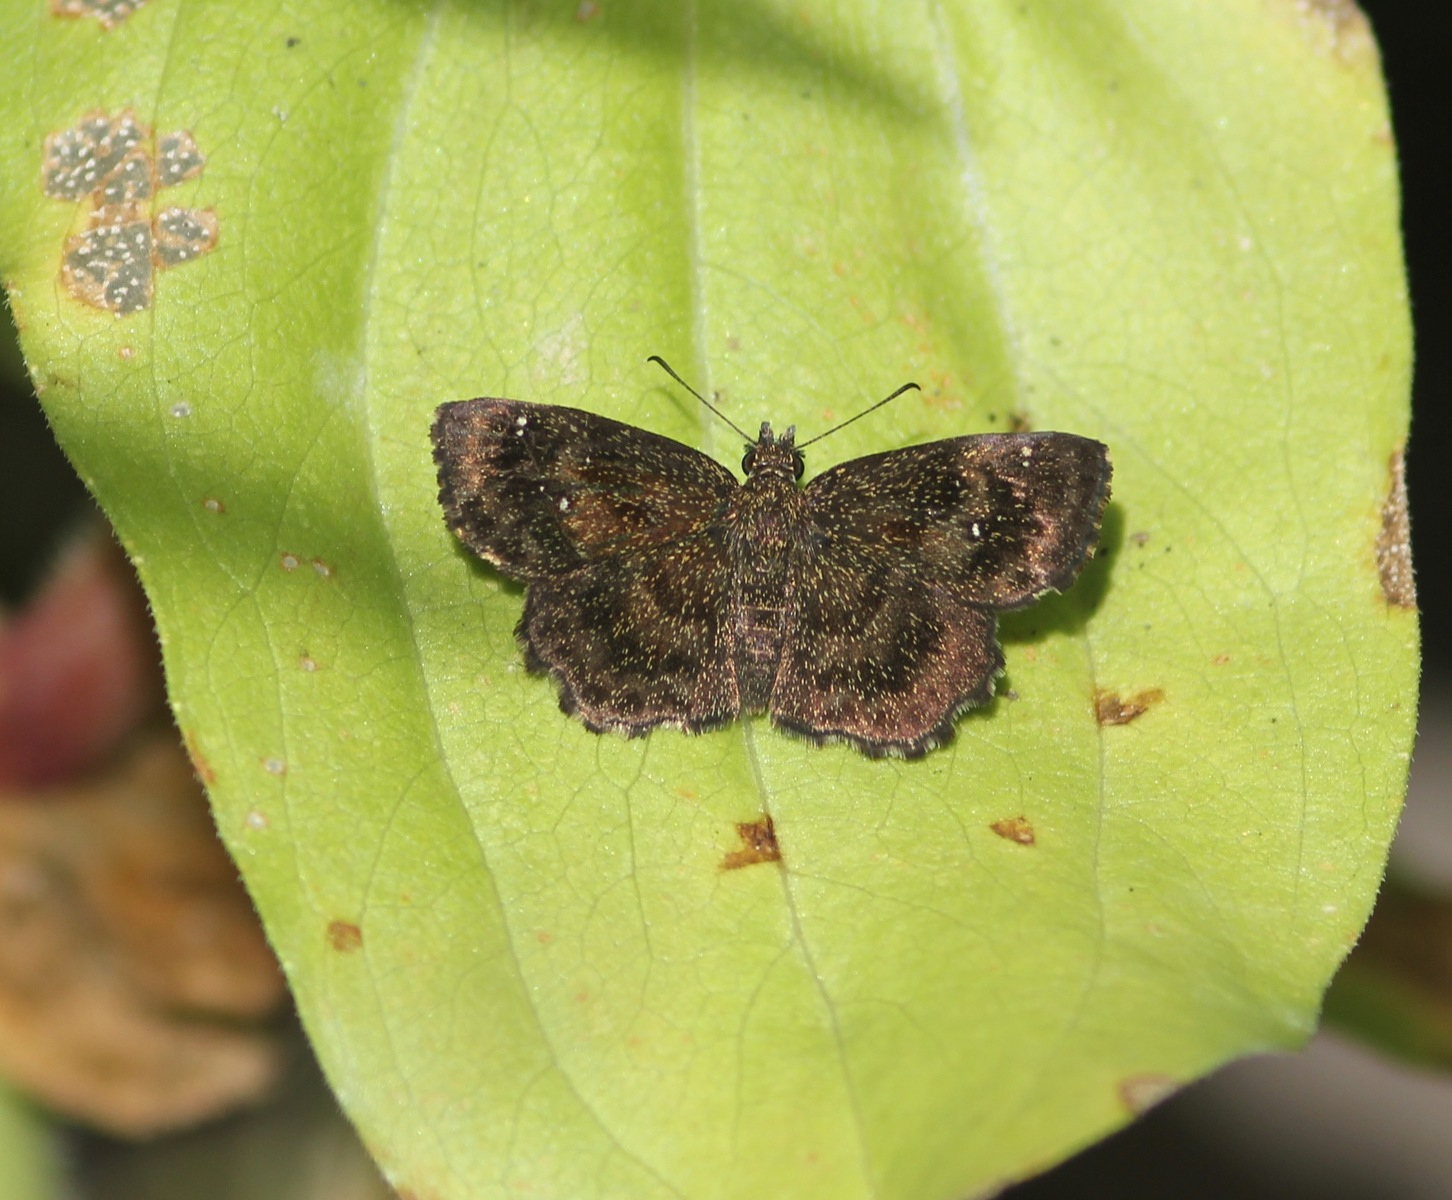 Dolores Amesbury photo'd this Hayhurst scallopwing in her yard on 9/22 -- one of only two found during the month.